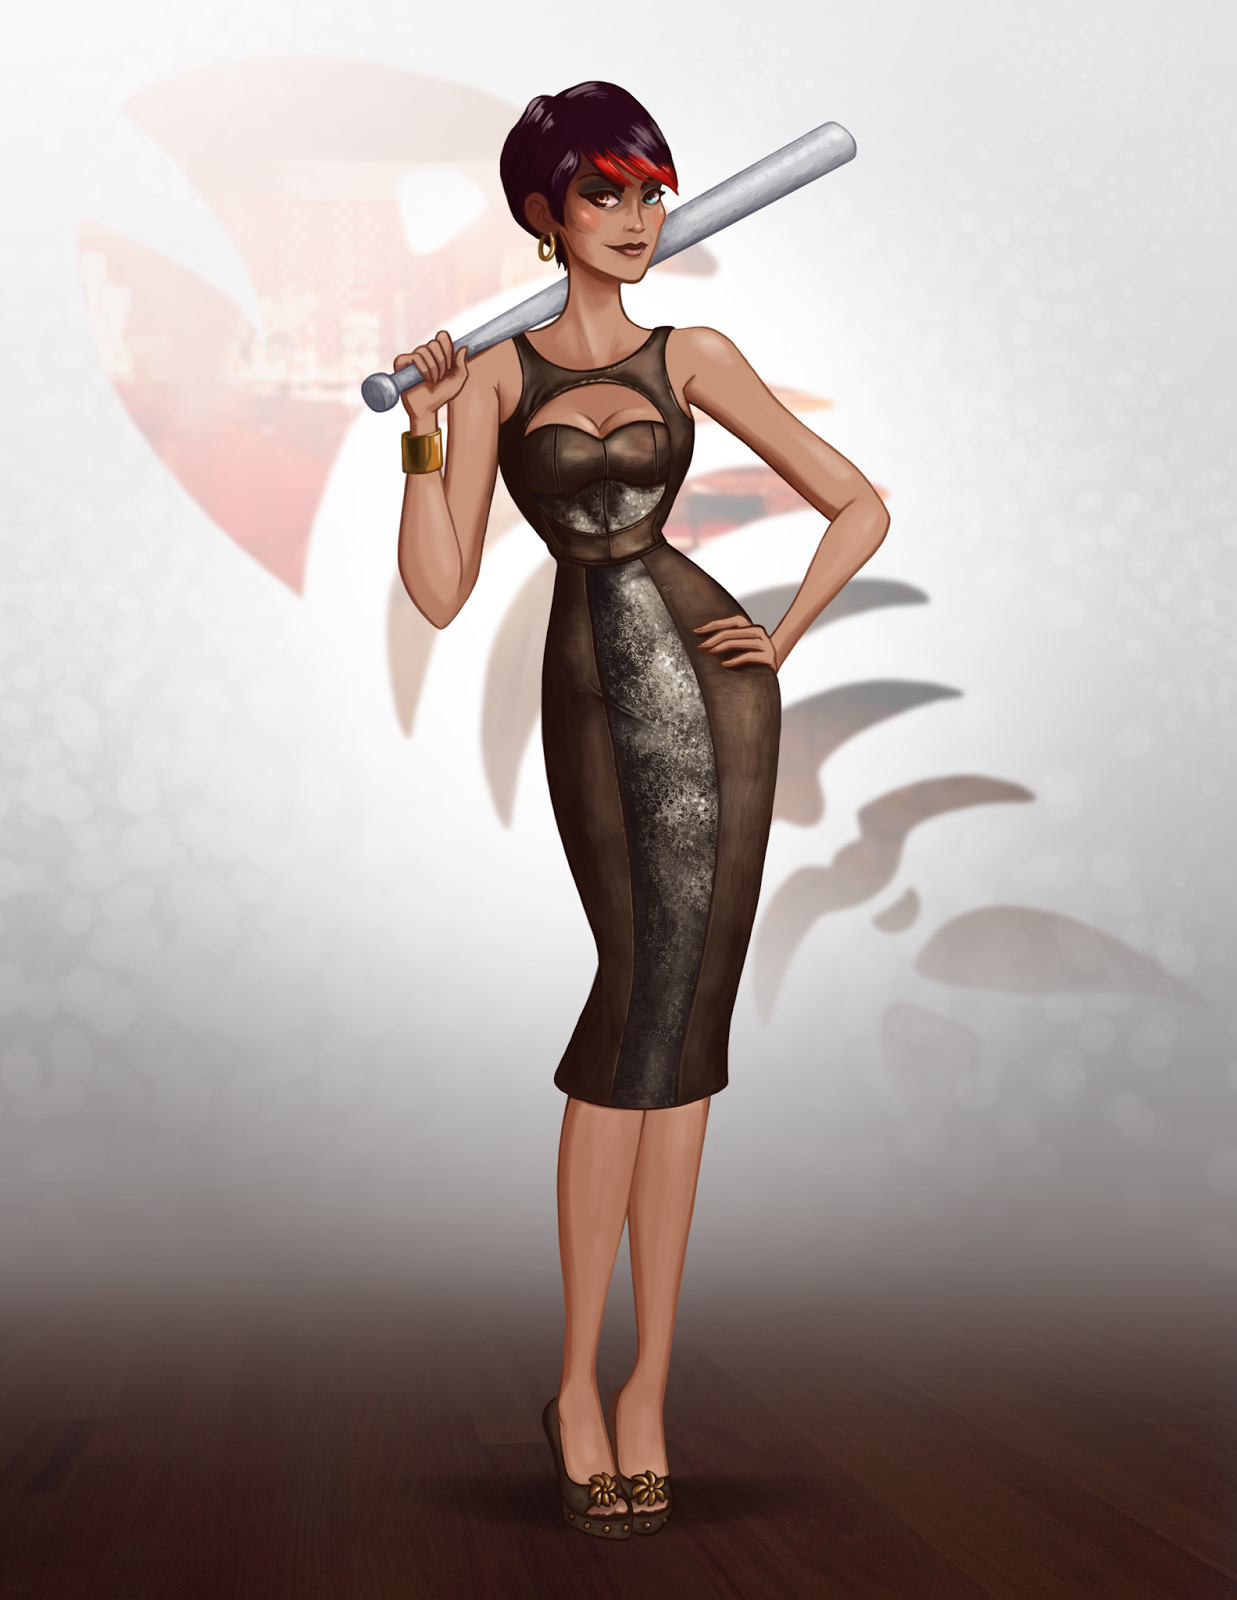 Fish mooney leann hill art for Who is fish mooney